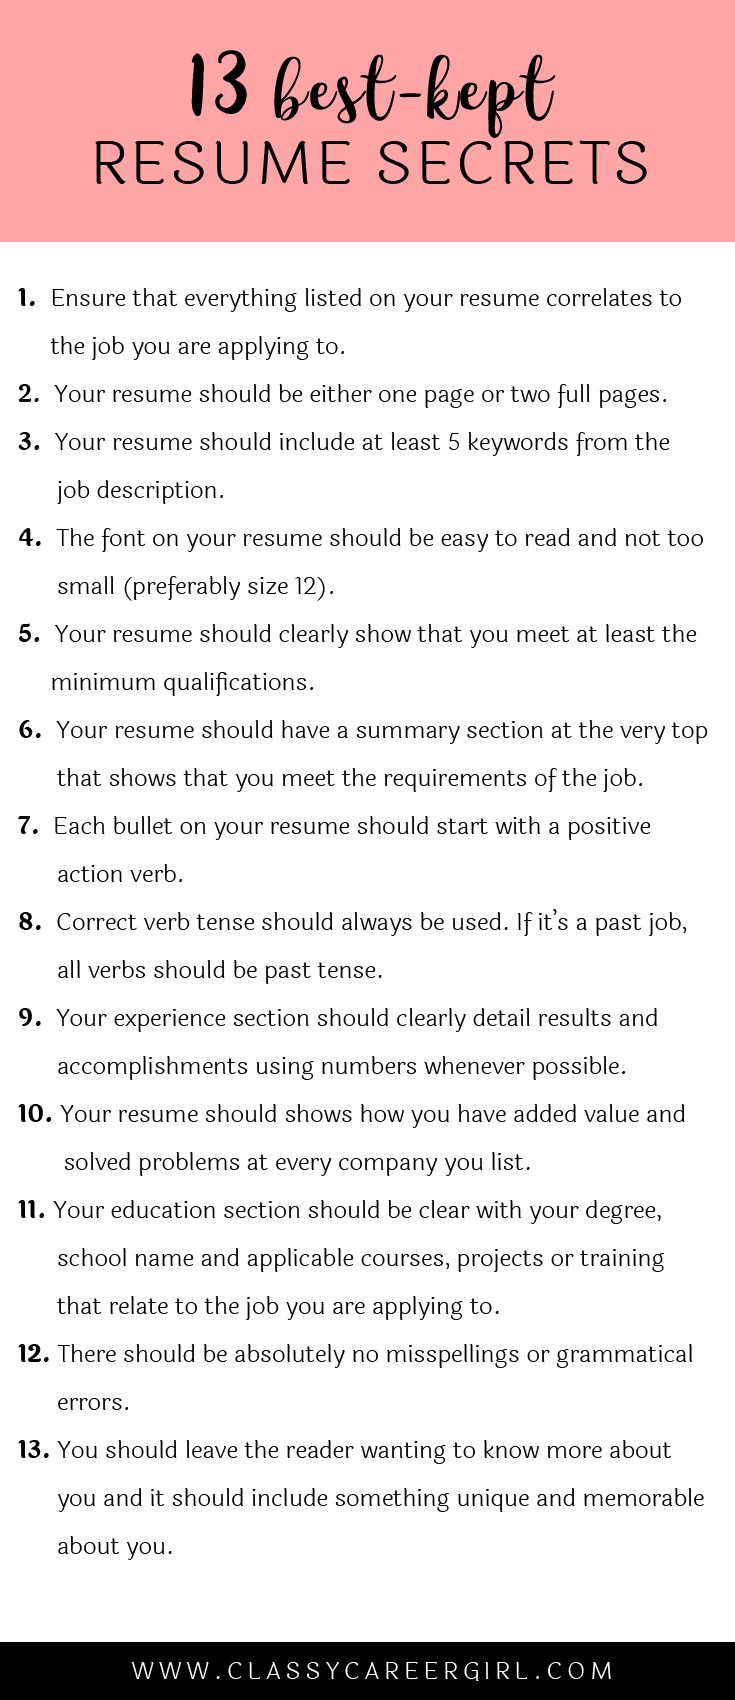 Opposenewapstandardsus  Pleasing  Ideas About Resume On Pinterest  Cv Format Resume Cv And  With Great Some Hiring Managers Will Toss Your Resume Out If You Dont Know These  With Awesome What To Put On Resume Also What Makes A Good Resume In Addition Hospitality Resume And Resume Career Objective As Well As General Labor Resume Additionally Standard Resume Format From Pinterestcom With Opposenewapstandardsus  Great  Ideas About Resume On Pinterest  Cv Format Resume Cv And  With Awesome Some Hiring Managers Will Toss Your Resume Out If You Dont Know These  And Pleasing What To Put On Resume Also What Makes A Good Resume In Addition Hospitality Resume From Pinterestcom